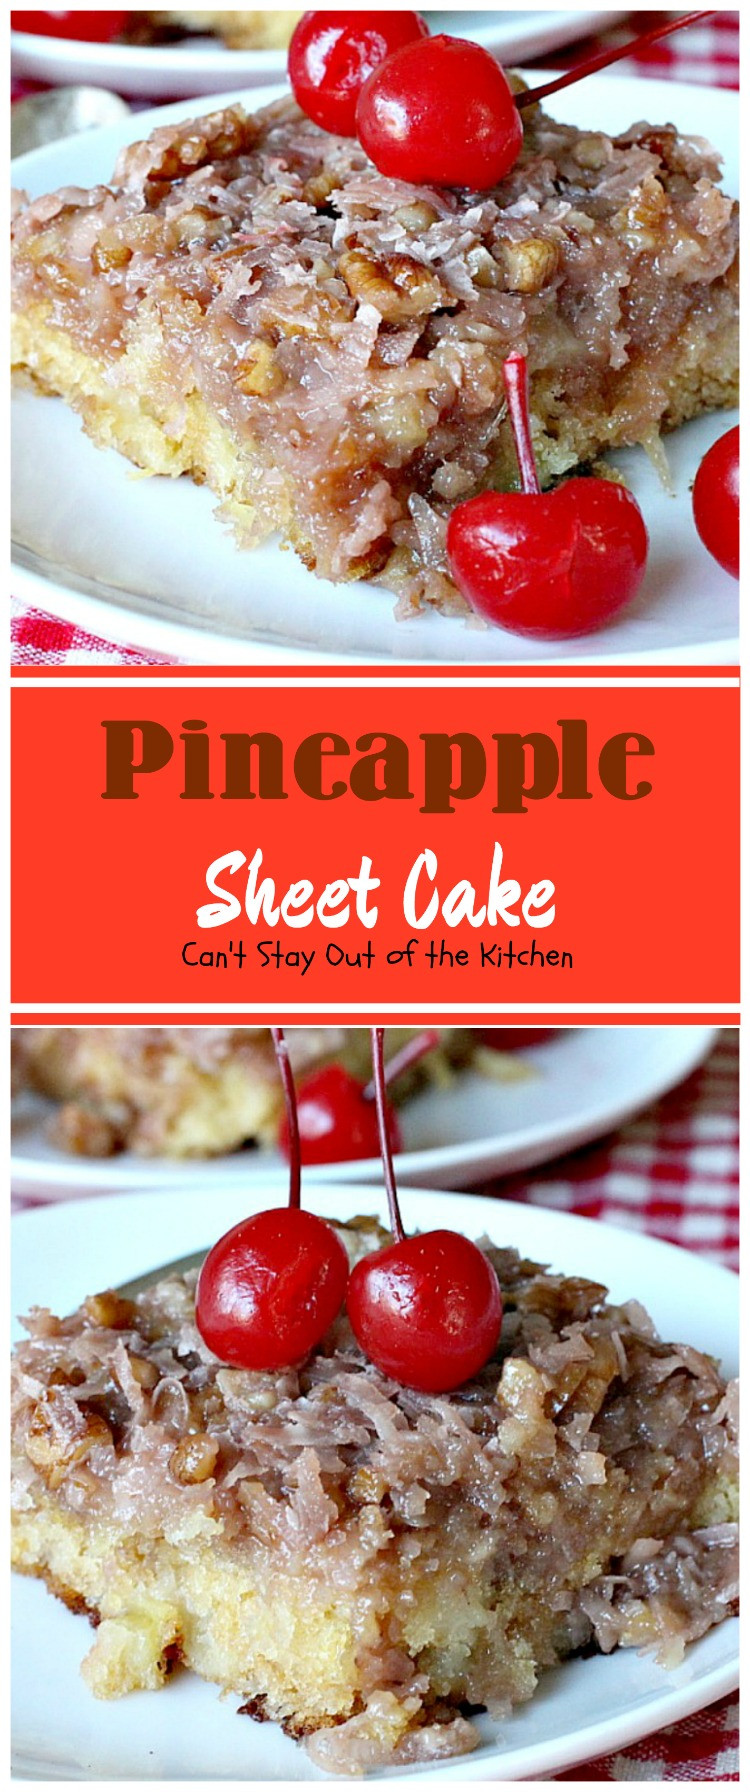 Pineapple Sheet Cake  Pineapple Sheet Cake Can t Stay Out of the Kitchen